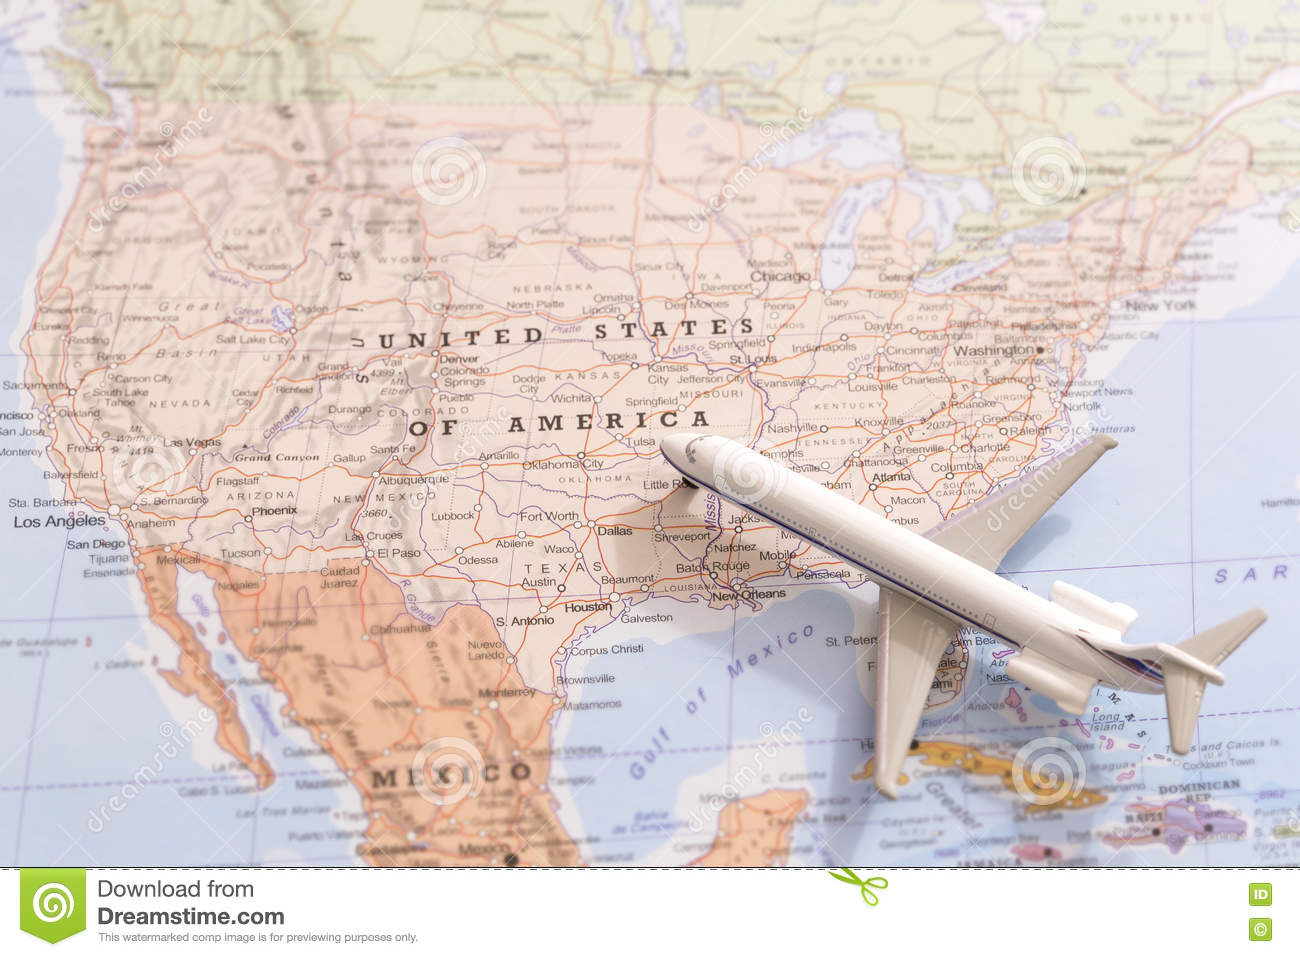 Clipartfest travel destination usa. Airplane to us clipart map